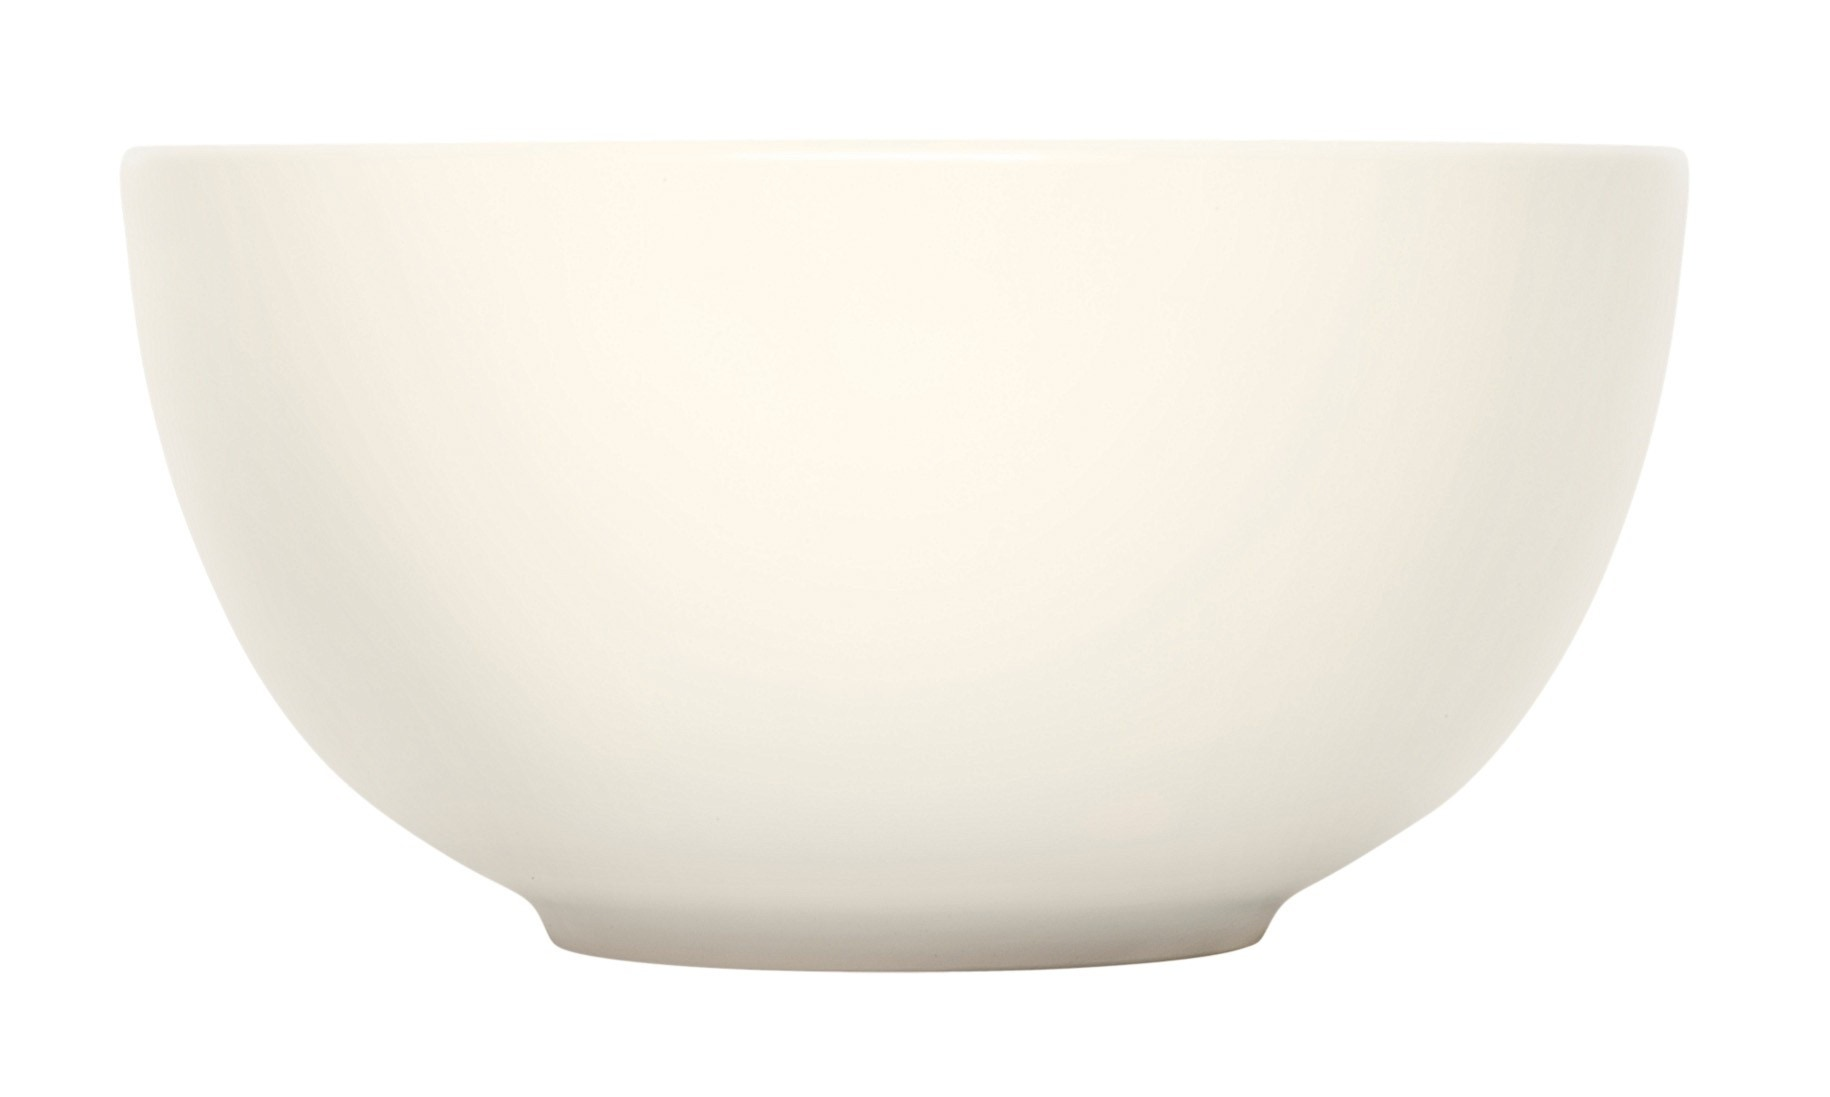 Iittala Teema Serving Bowl (1.65 qt, 1.5 L)